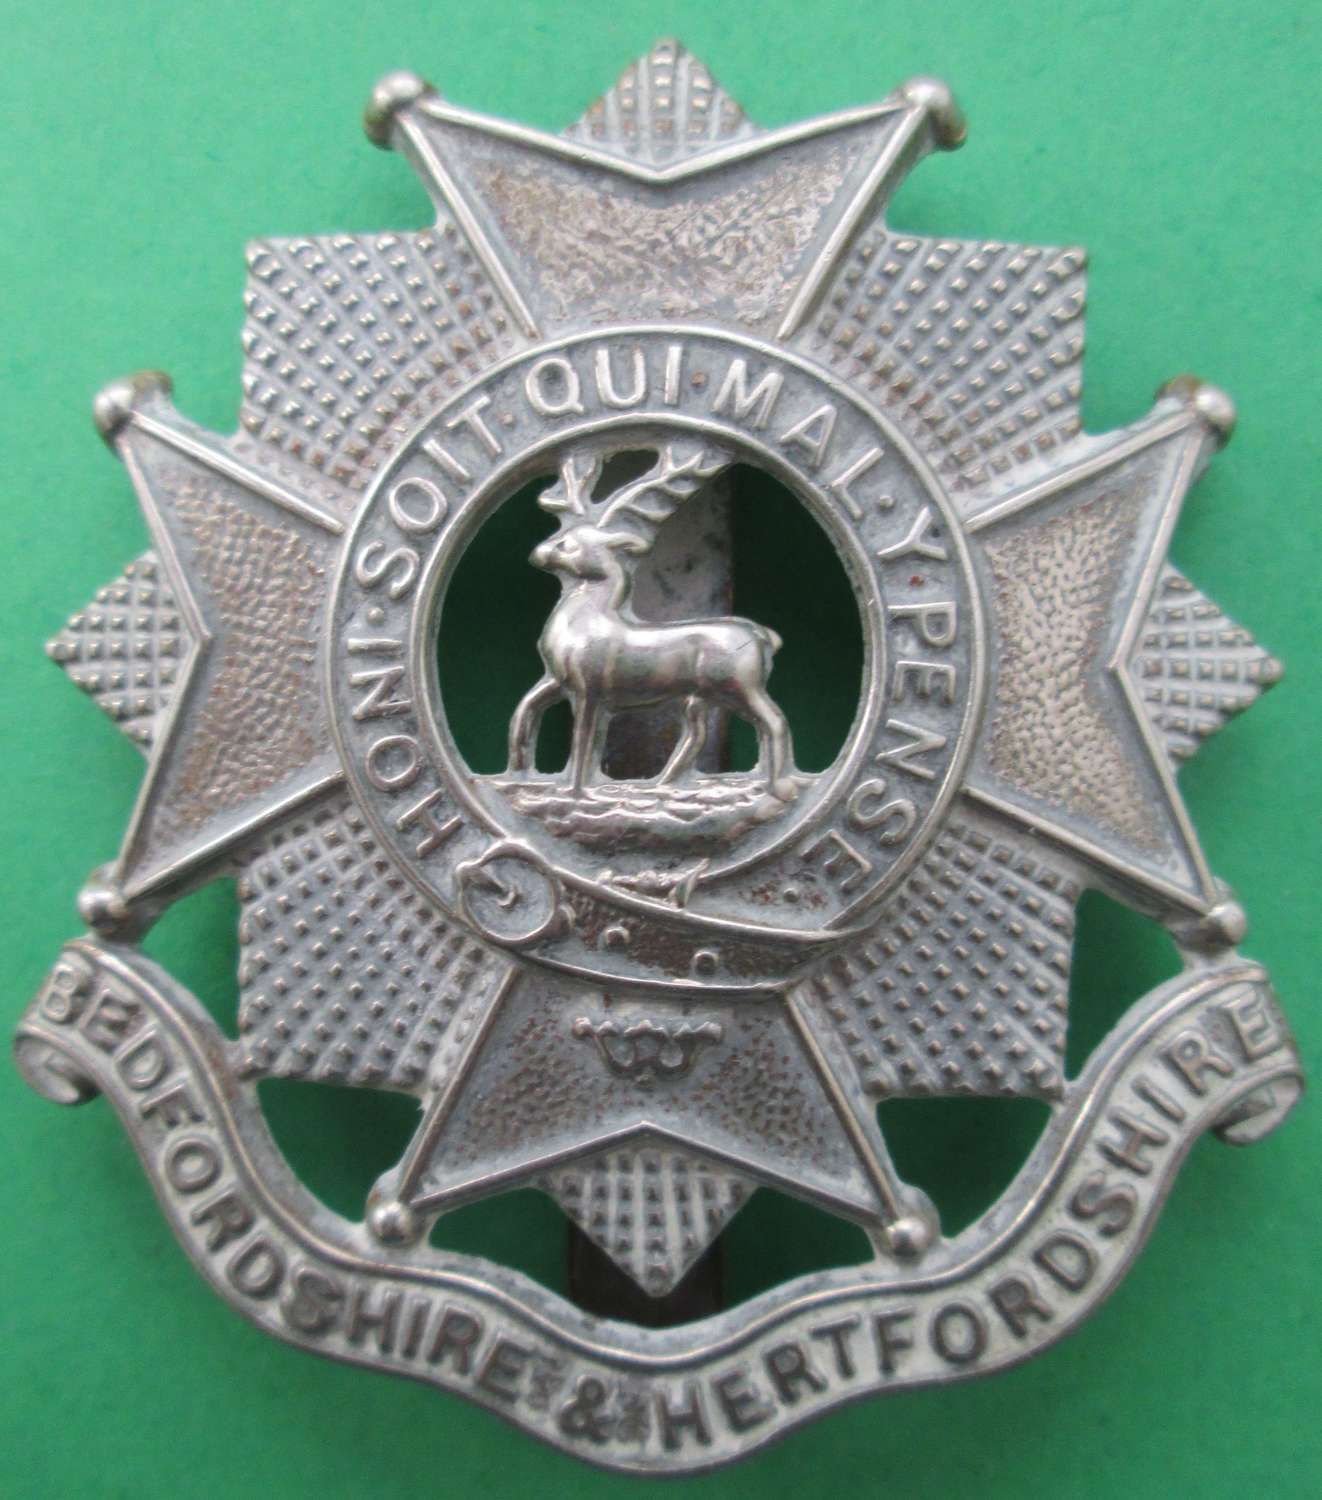 A BEDFORDSHIRE AND HERTFORDSHIRE CAP BADGE